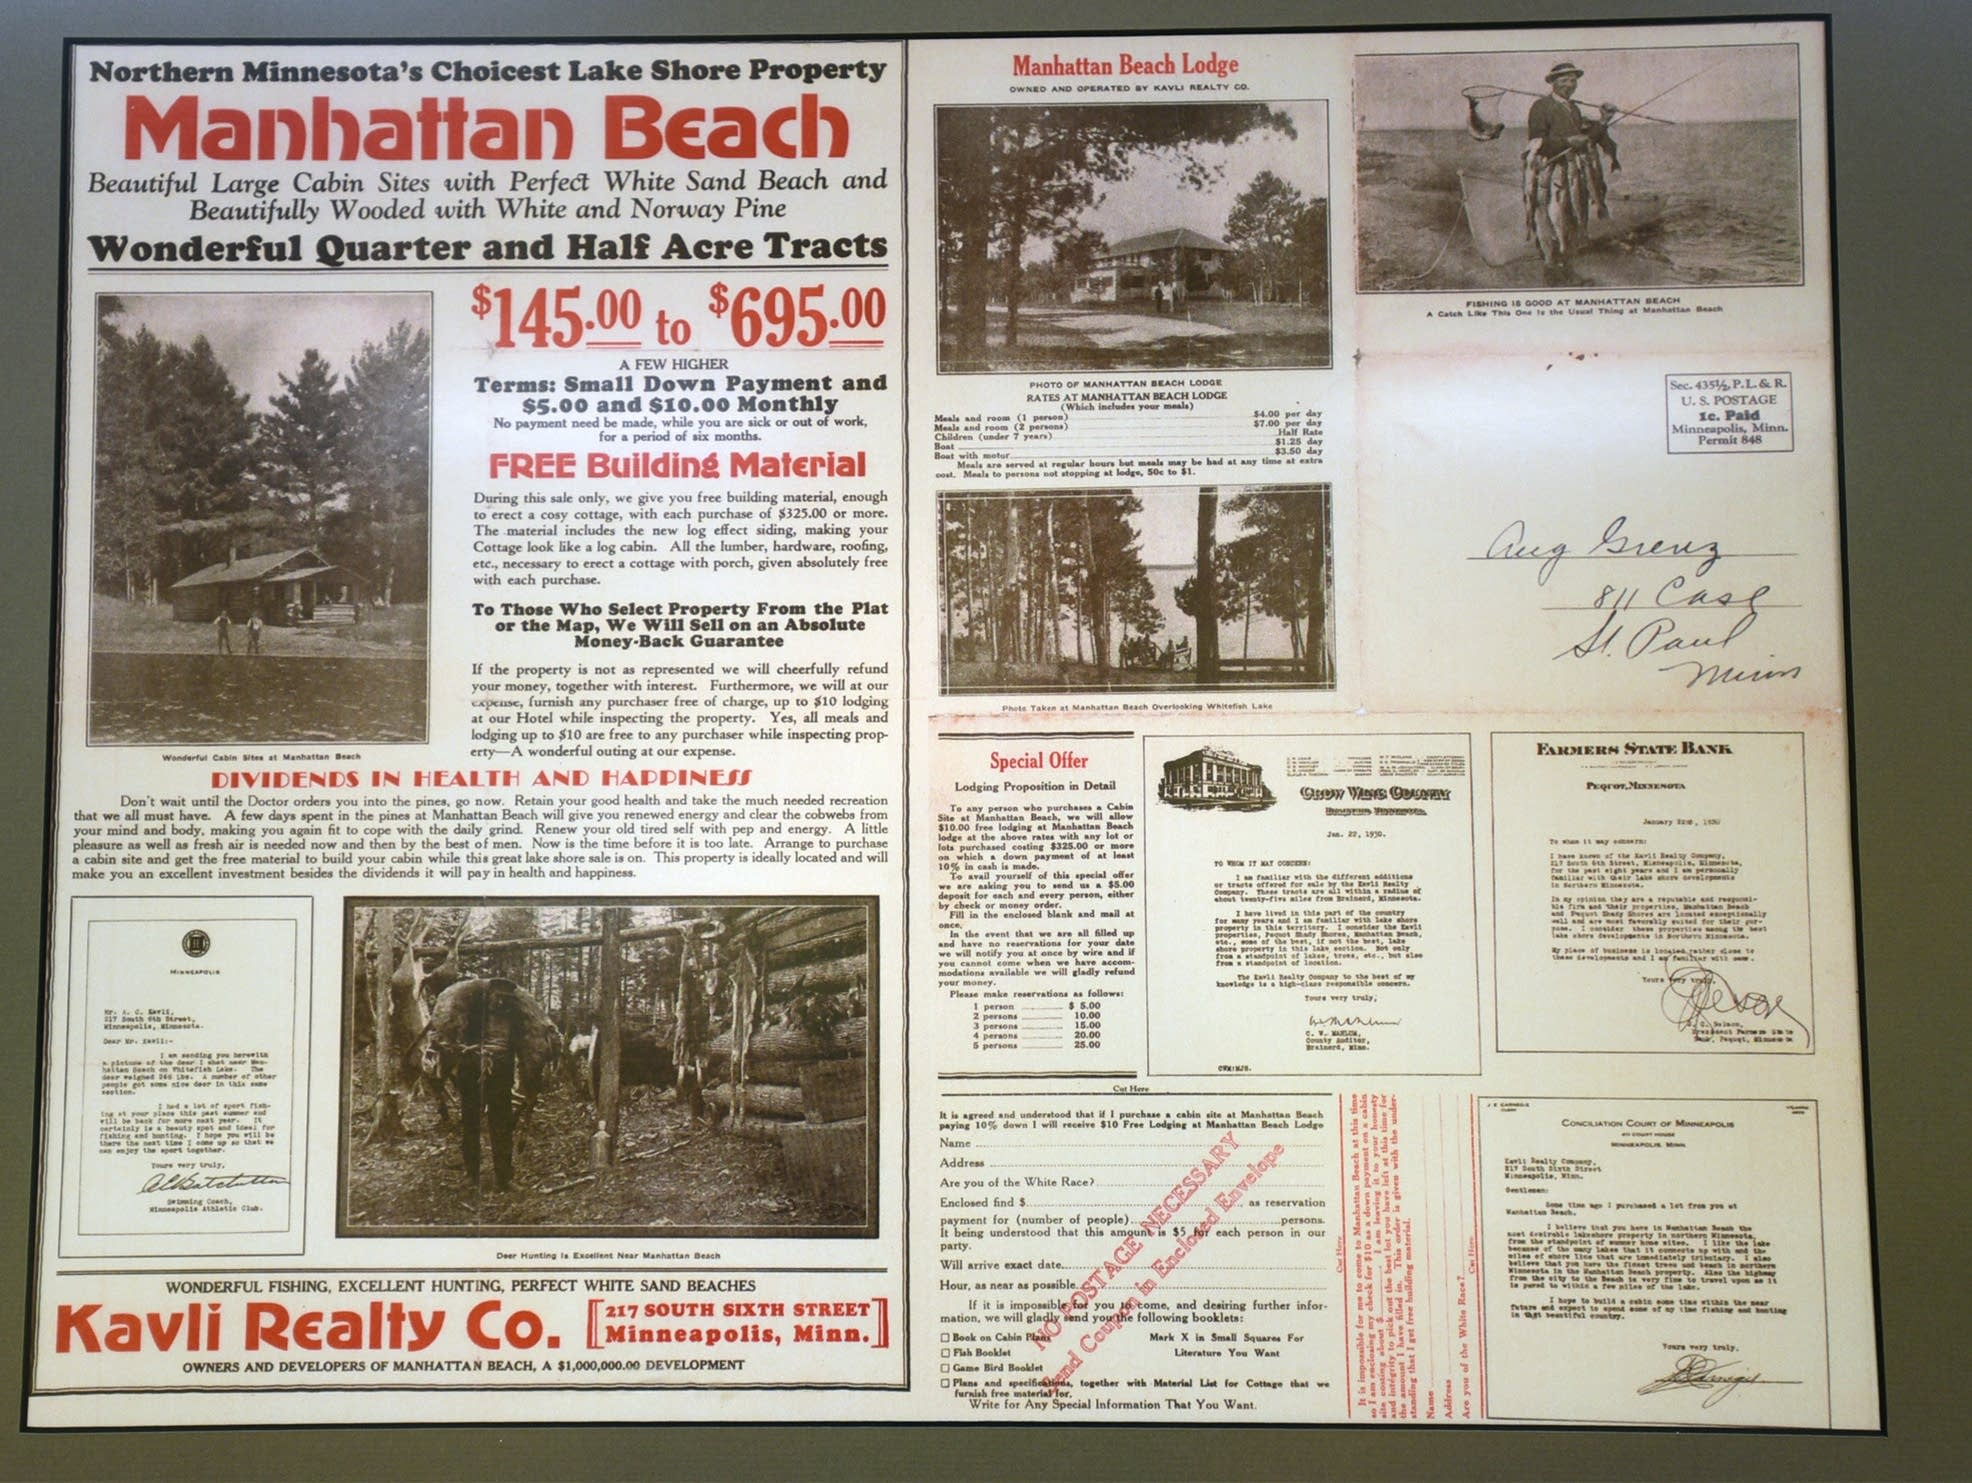 An old clipping advertising Manhattan Beach's lake shore property.